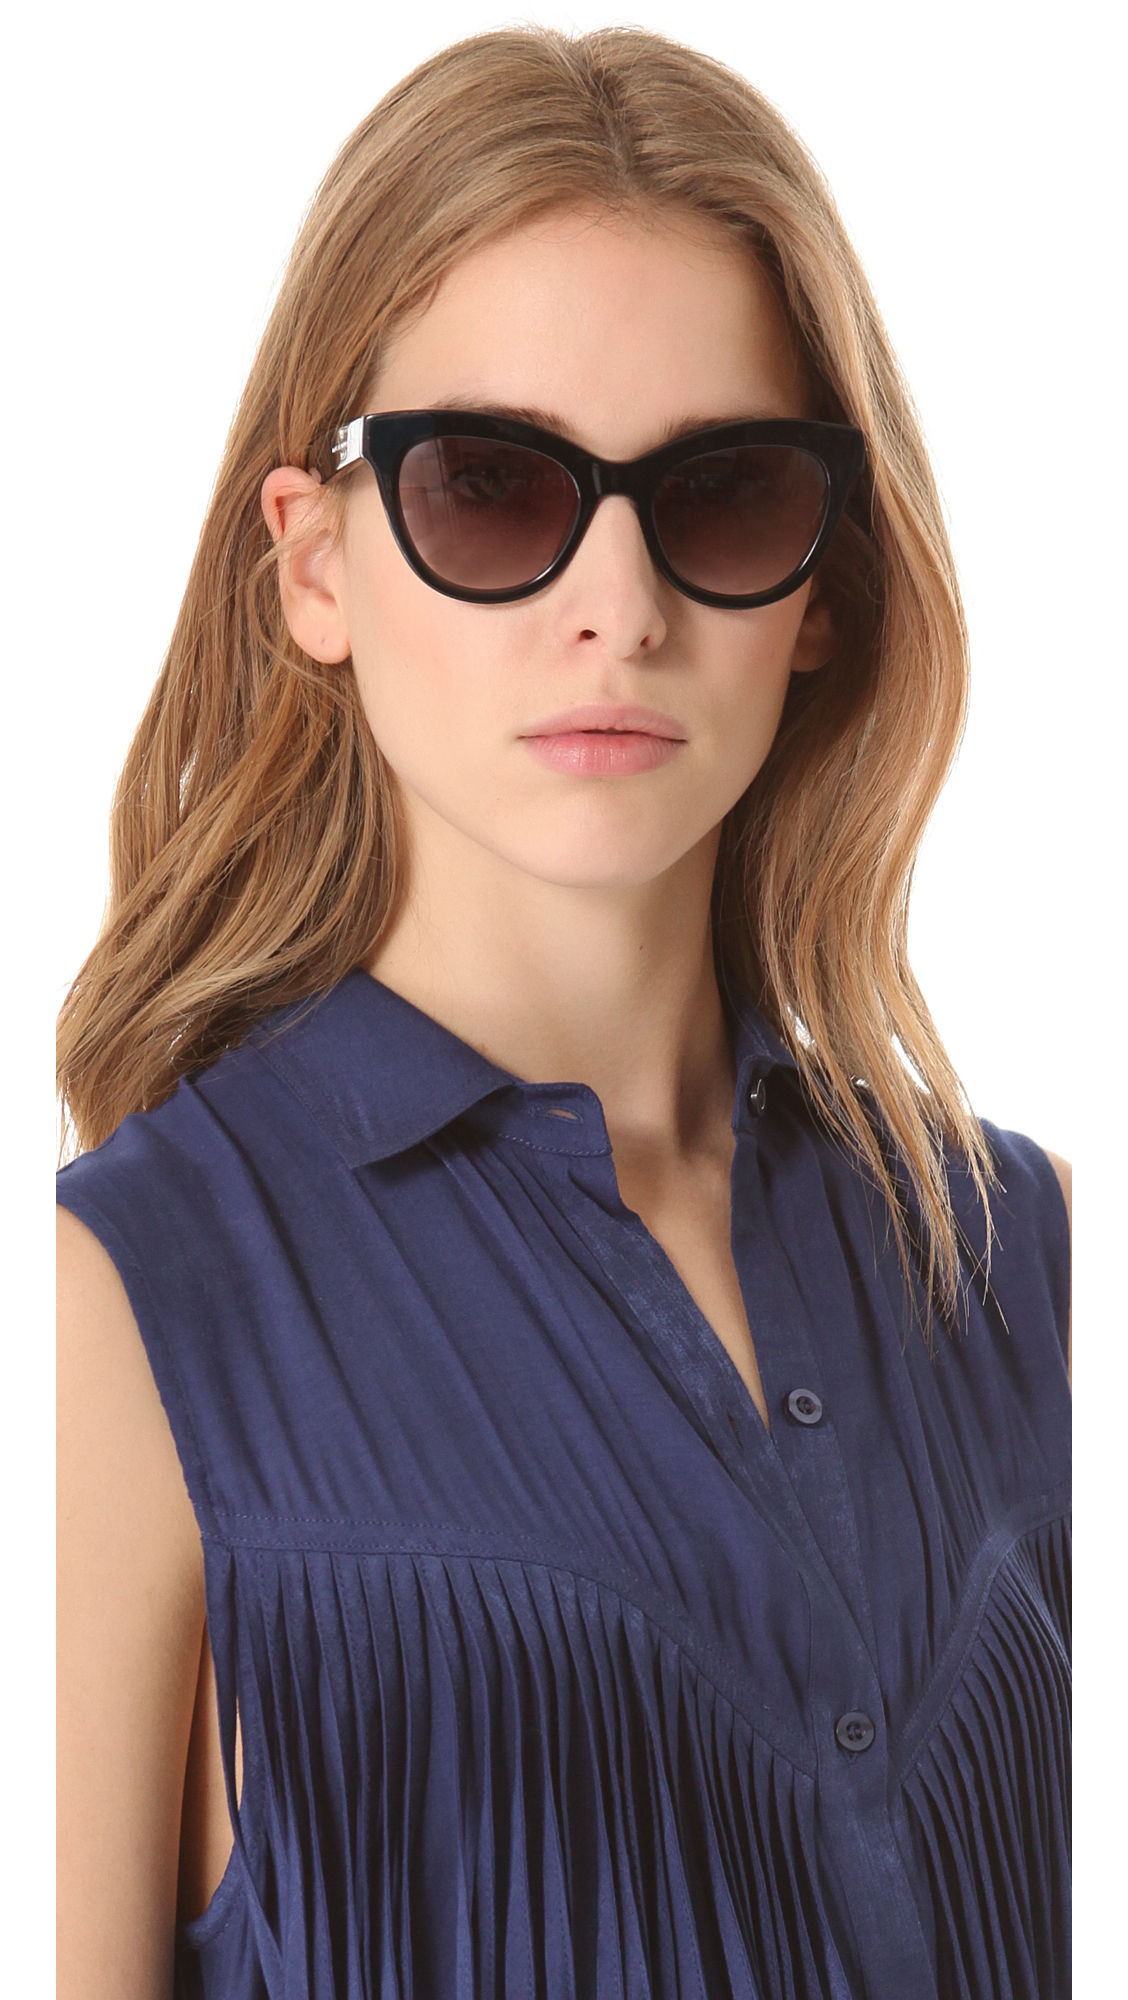 Marc by Marc Jacobs Cateye Sunglasses in Black Grey Marc Jacobs Oq3hcP